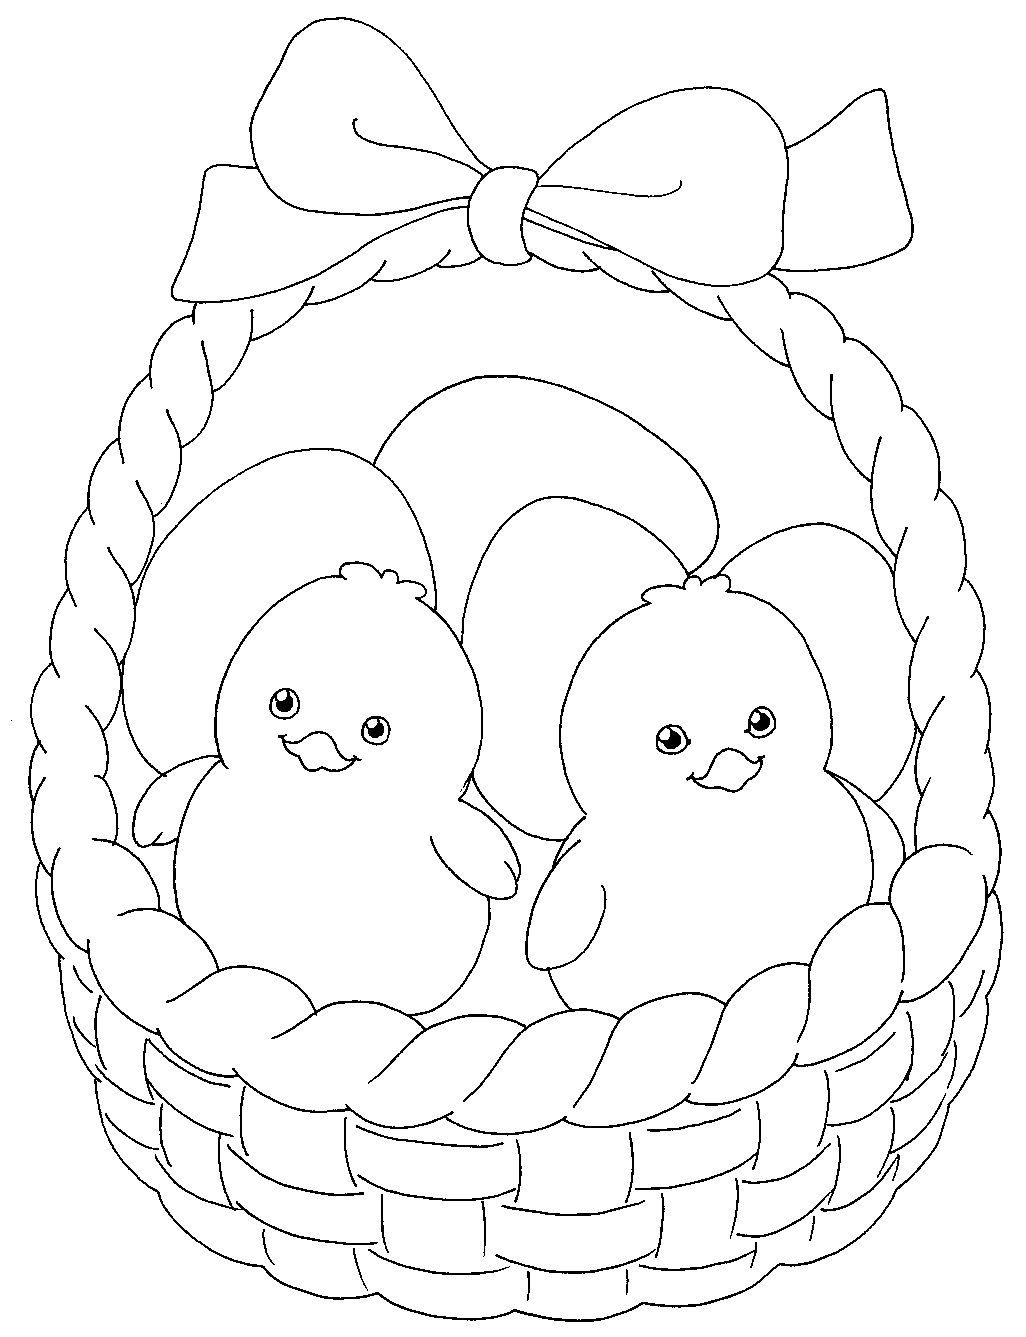 Cute Easter Chicks In A Basket To Colour Easter Colouring